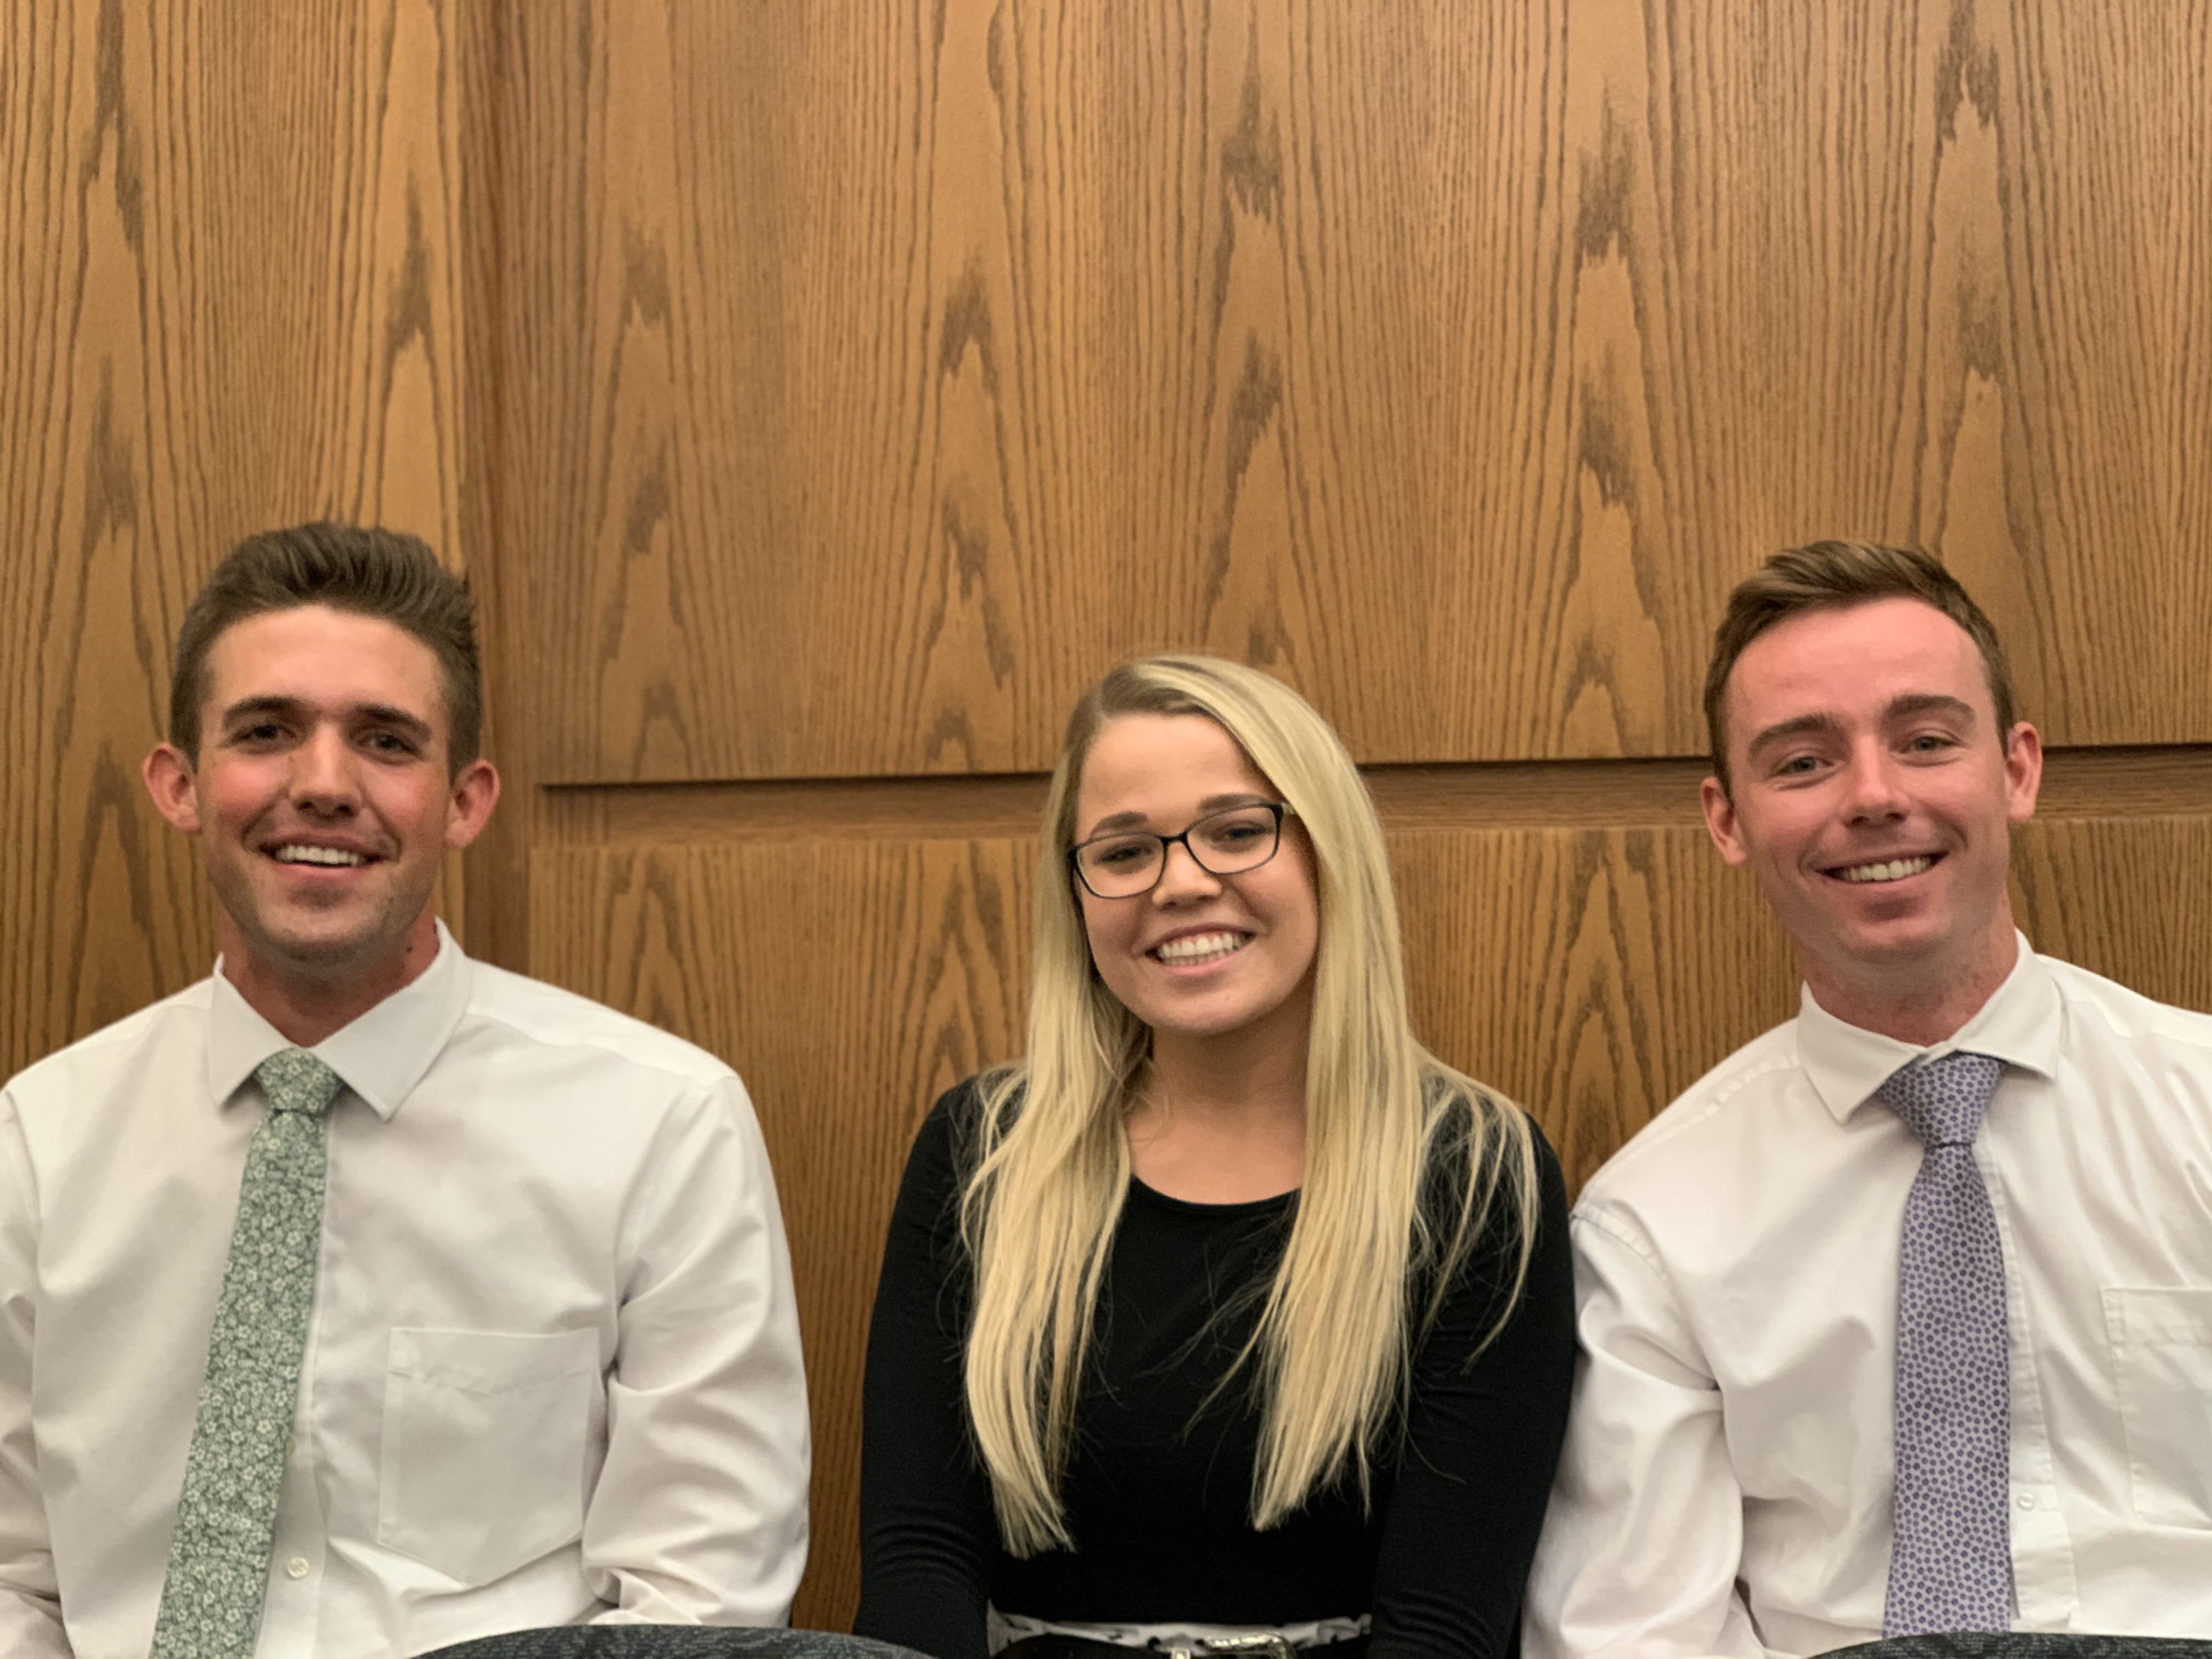 From left, Dallan Larson, Reilly Ward and Matt Anderson attend a devotional by Elder Ronald A. Rasband at the Tempe Arizona Institute of Religion on Oct. 20.